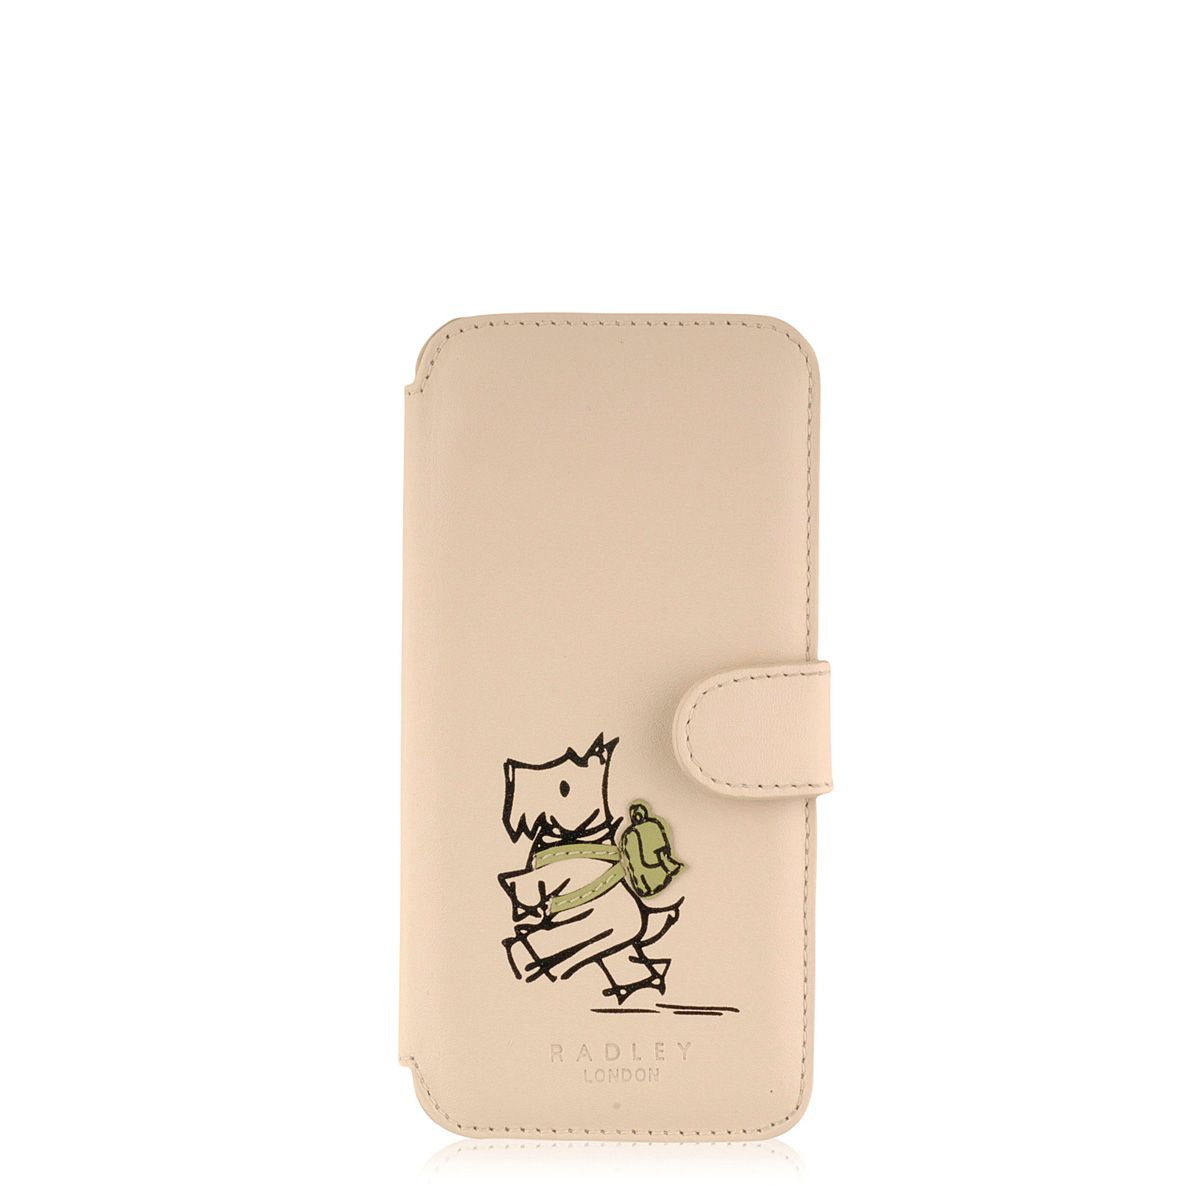 Walk the Walk cream iphone case